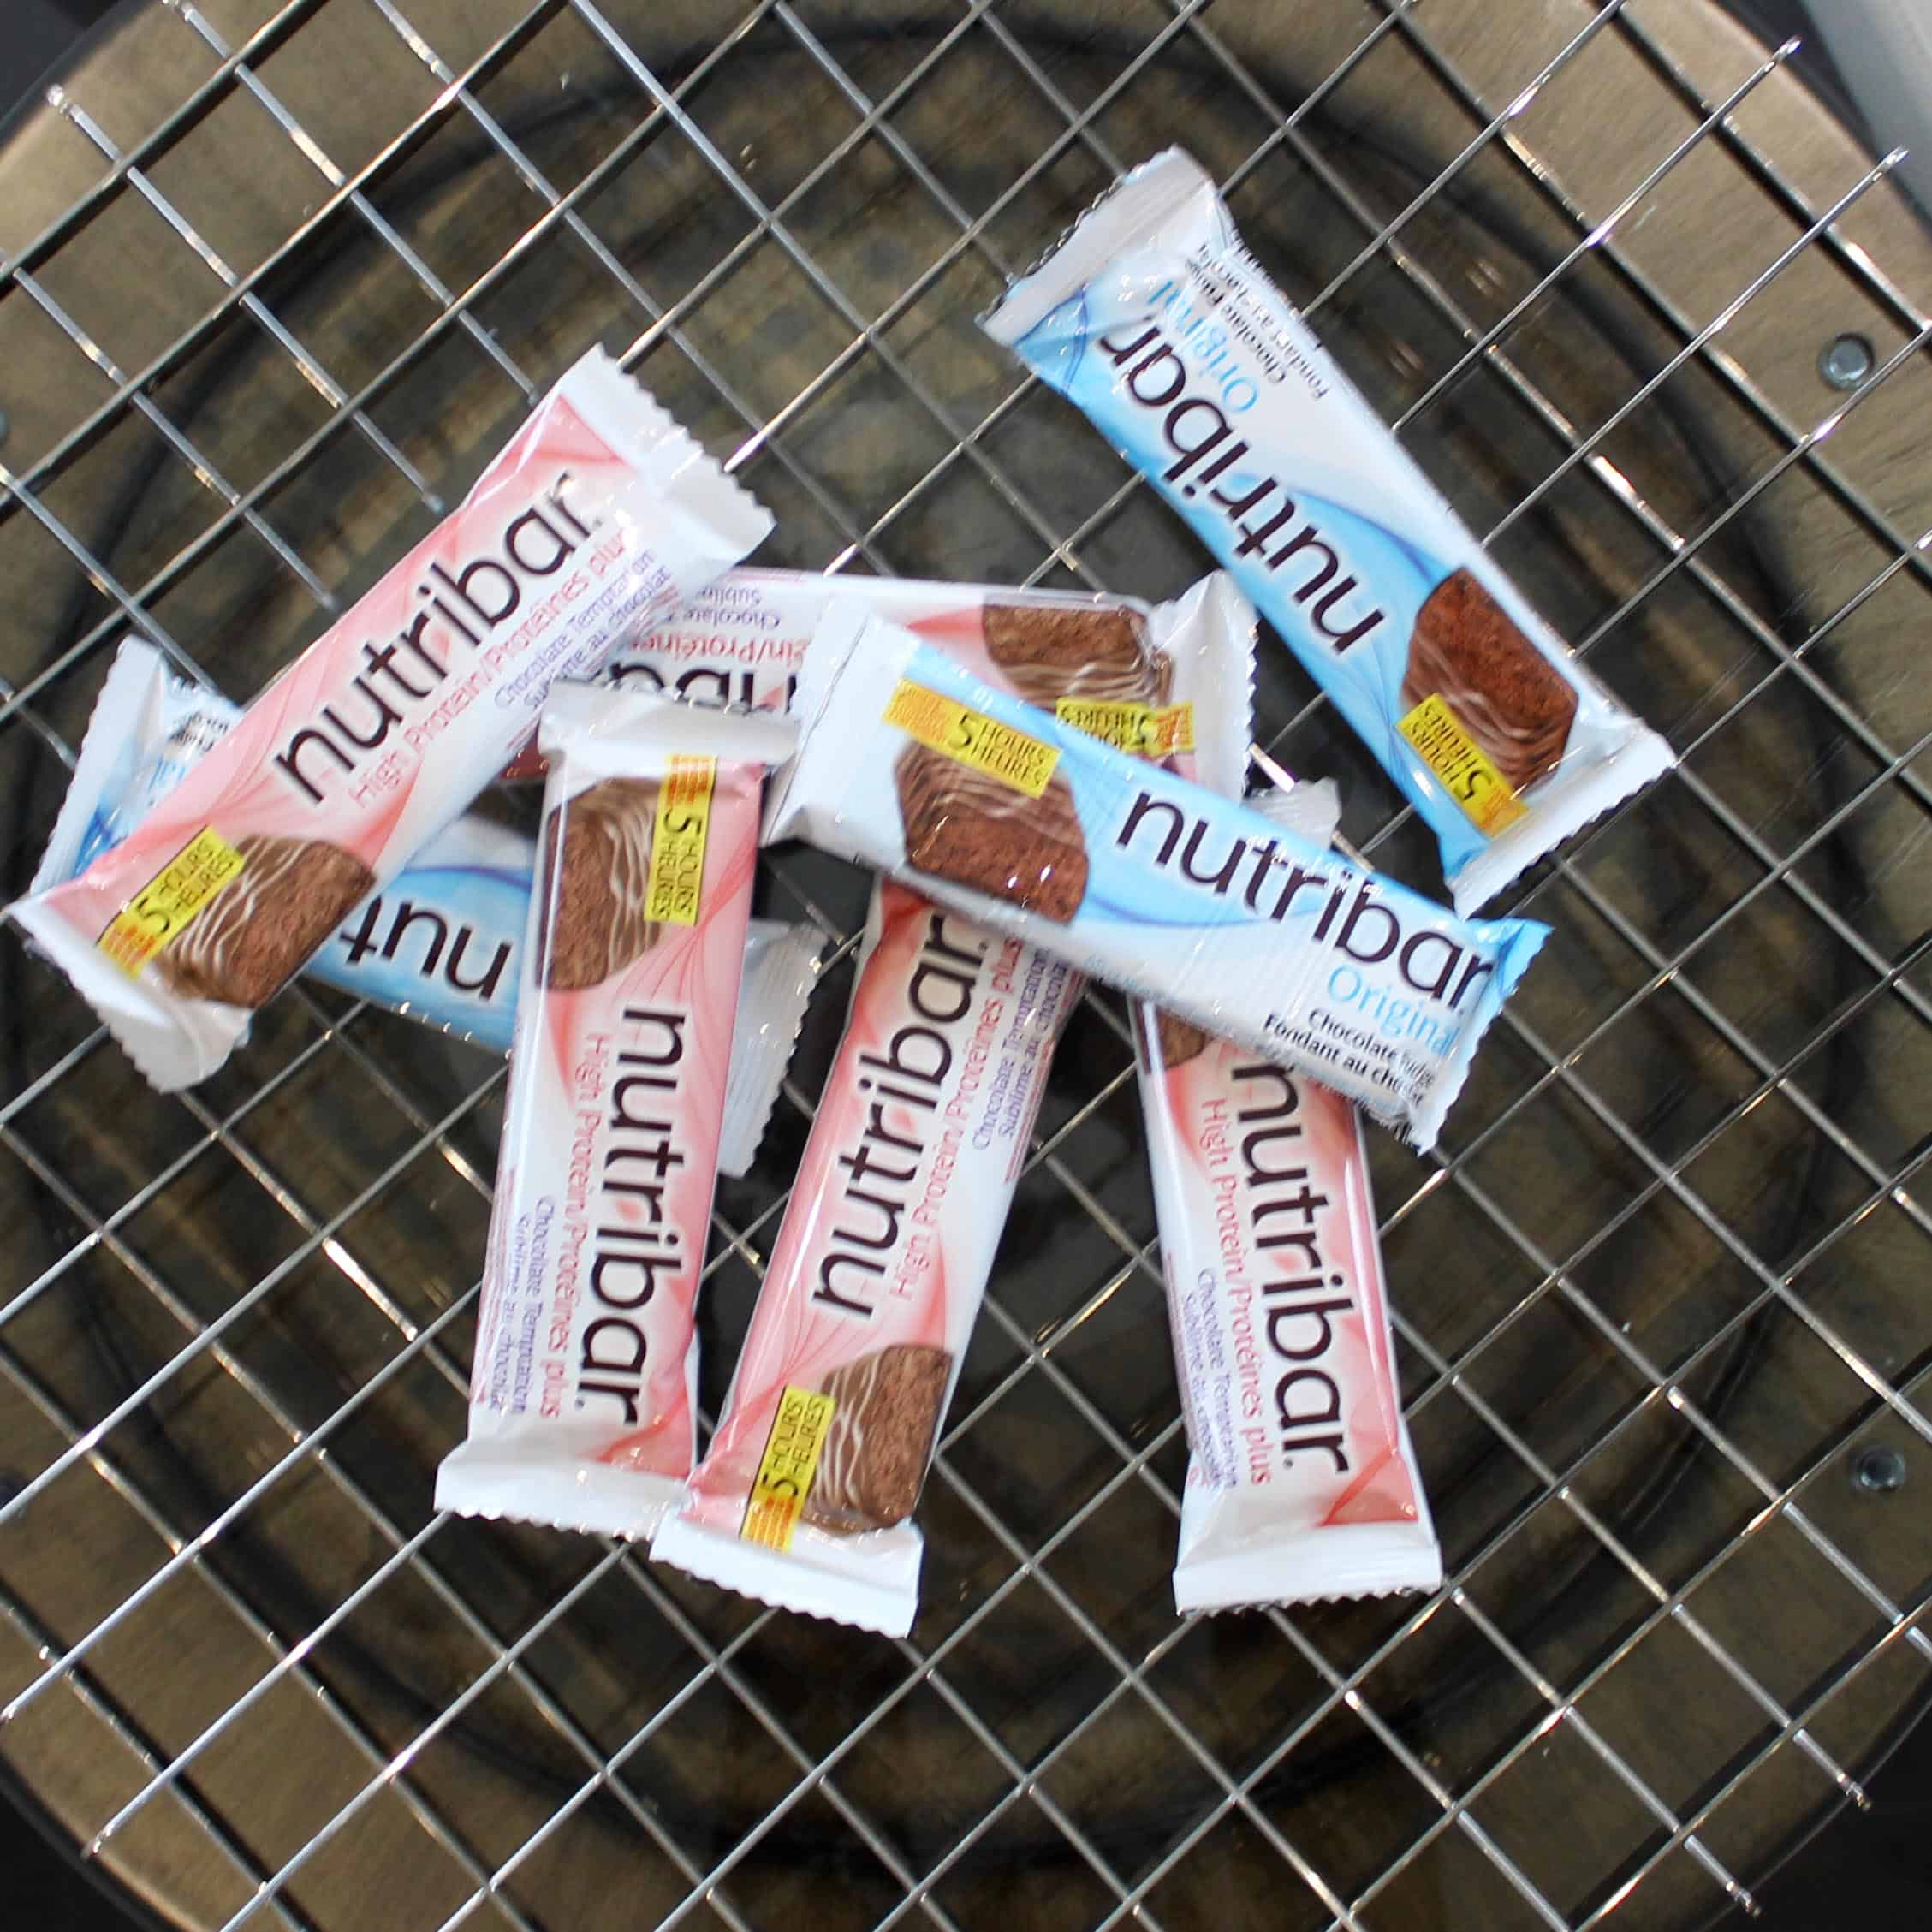 Get in Shape for Summer with Nutribar | Contest & Giveaway